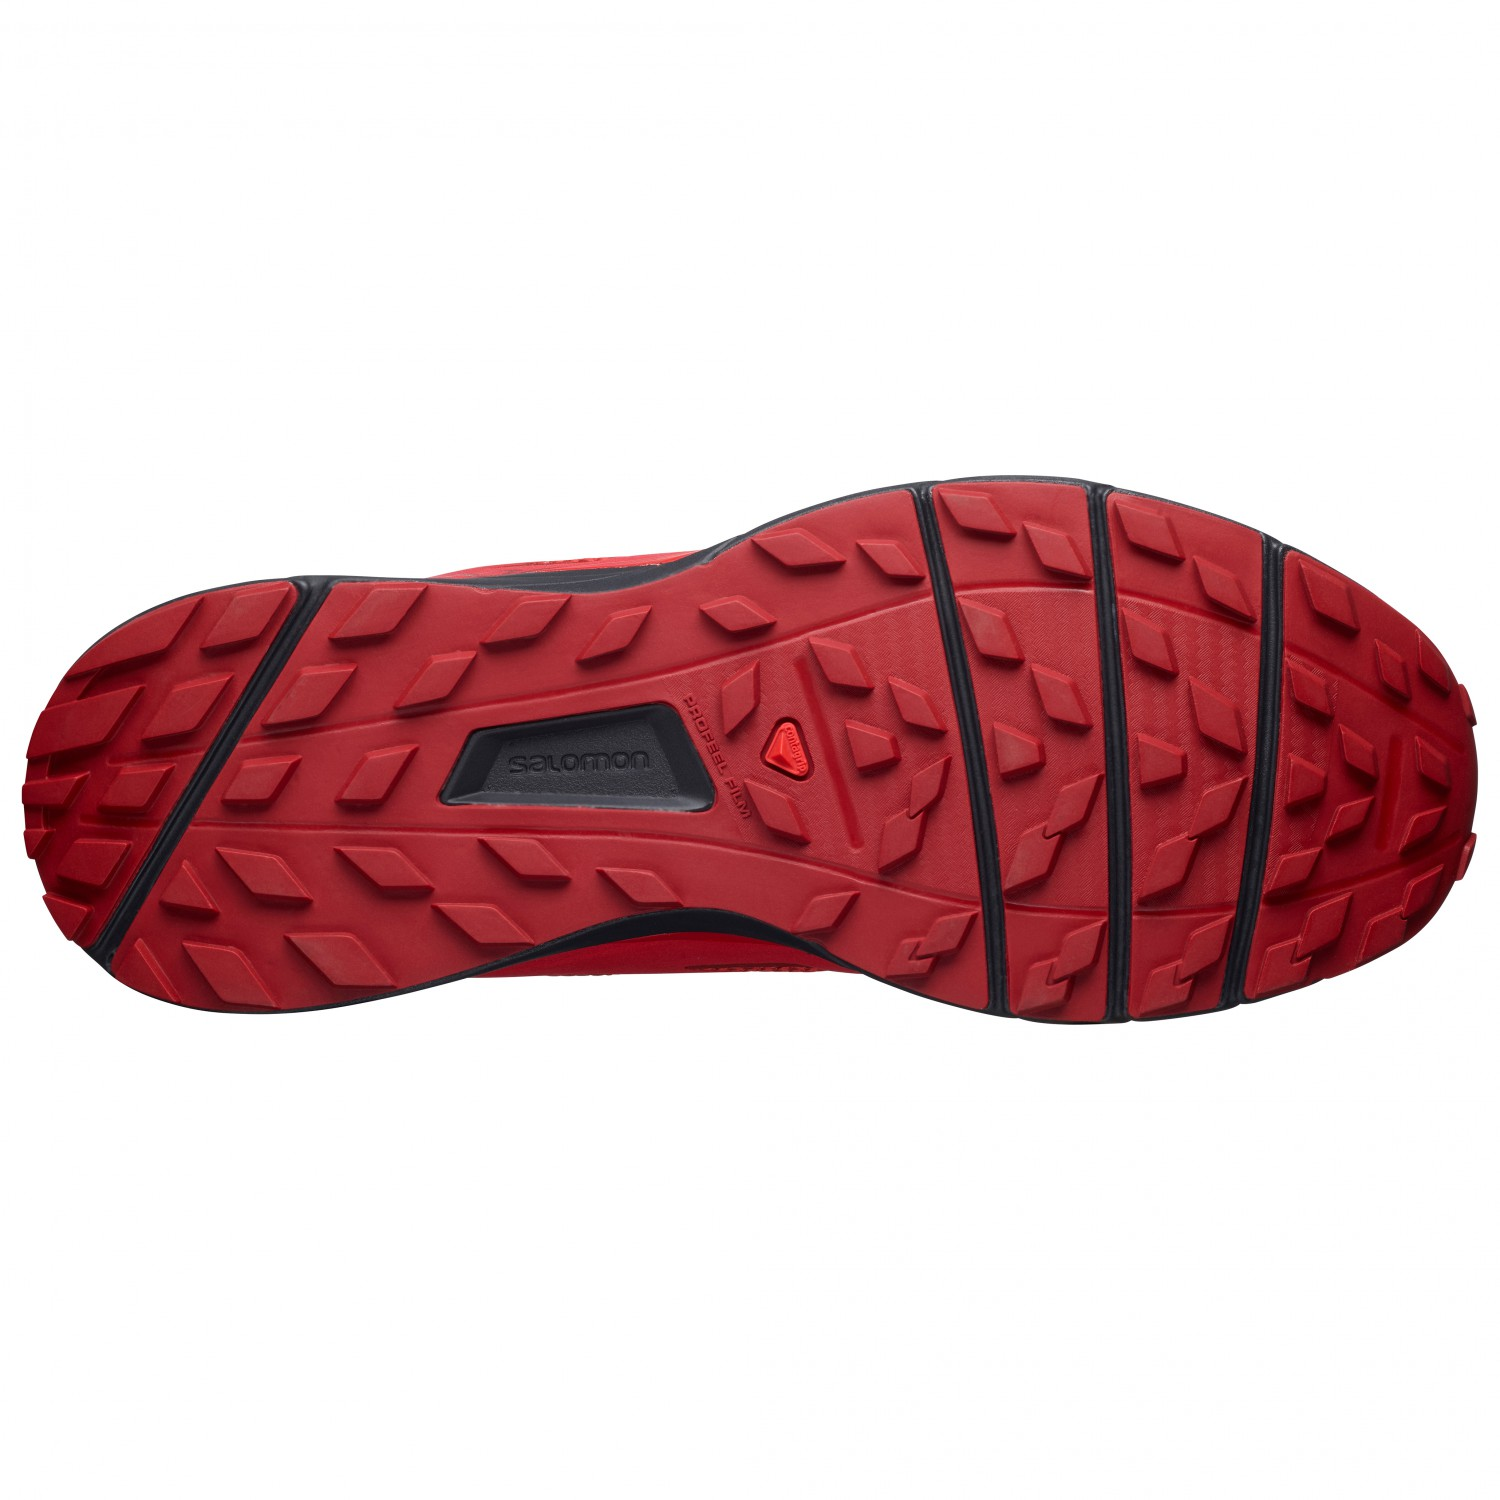 finest selection 48db7 3bd51 Salomon Sense Ride GTX Invisible Fit - Trail Running Shoes ...